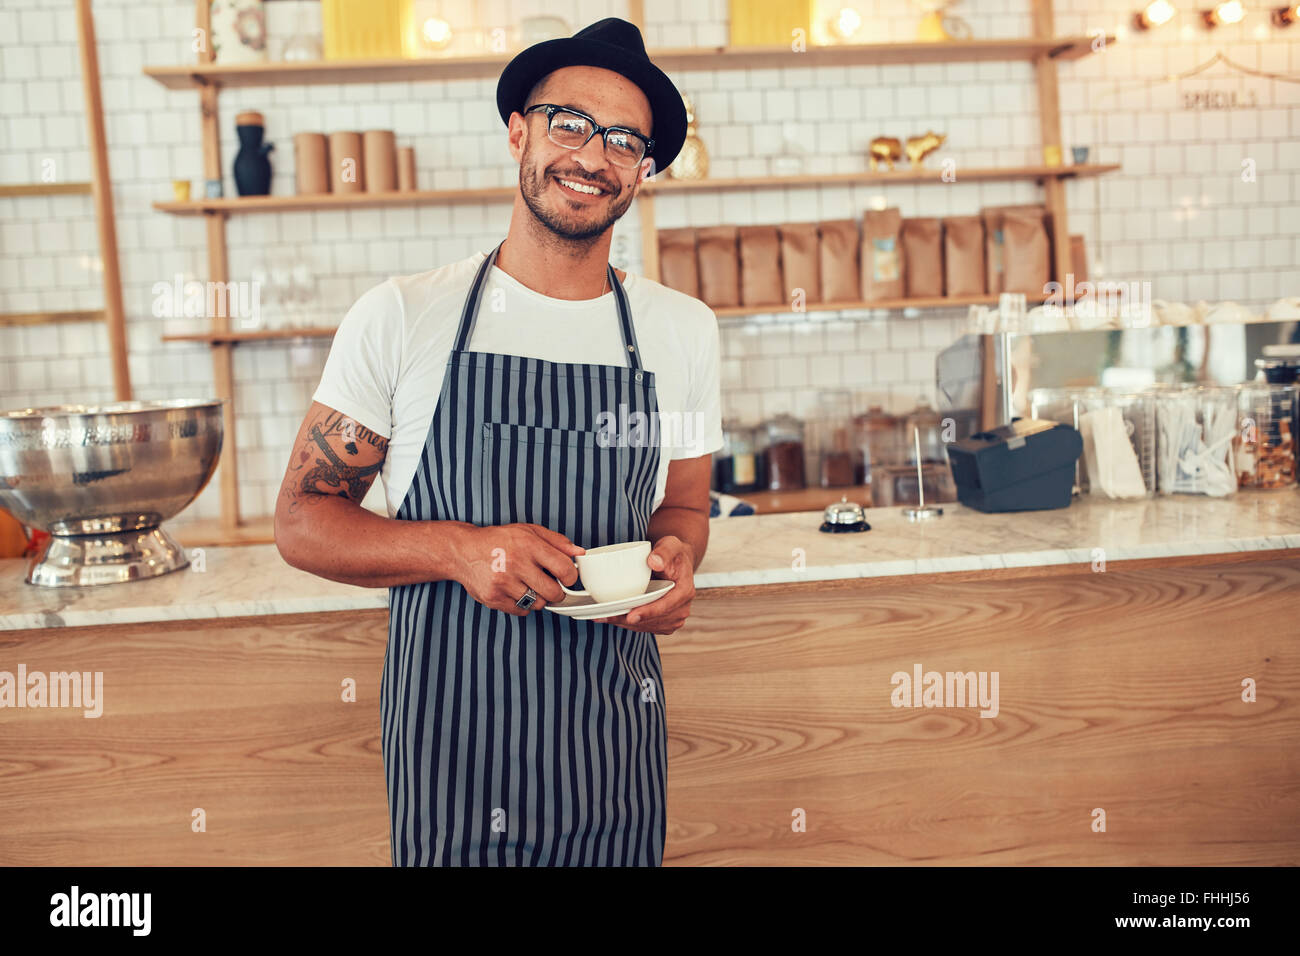 Portrait of happy young barista at work. Caucasian man wearing apron and hat standing in front of cafe counter with - Stock Image